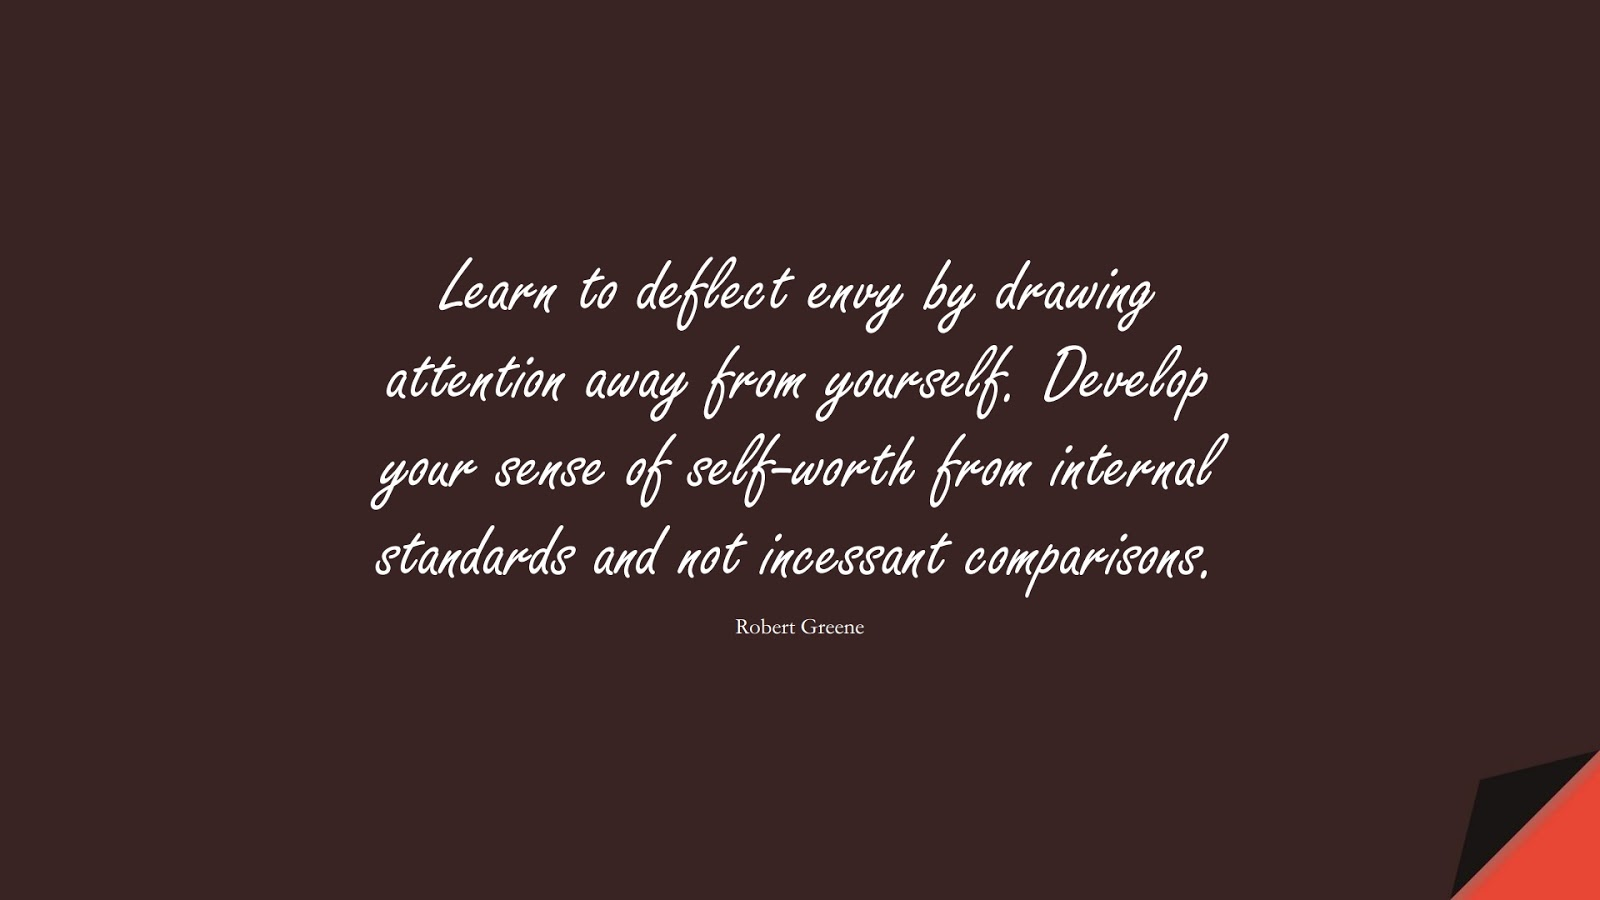 Learn to deflect envy by drawing attention away from yourself. Develop your sense of self-worth from internal standards and not incessant comparisons. (Robert Greene);  #SelfEsteemQuotes